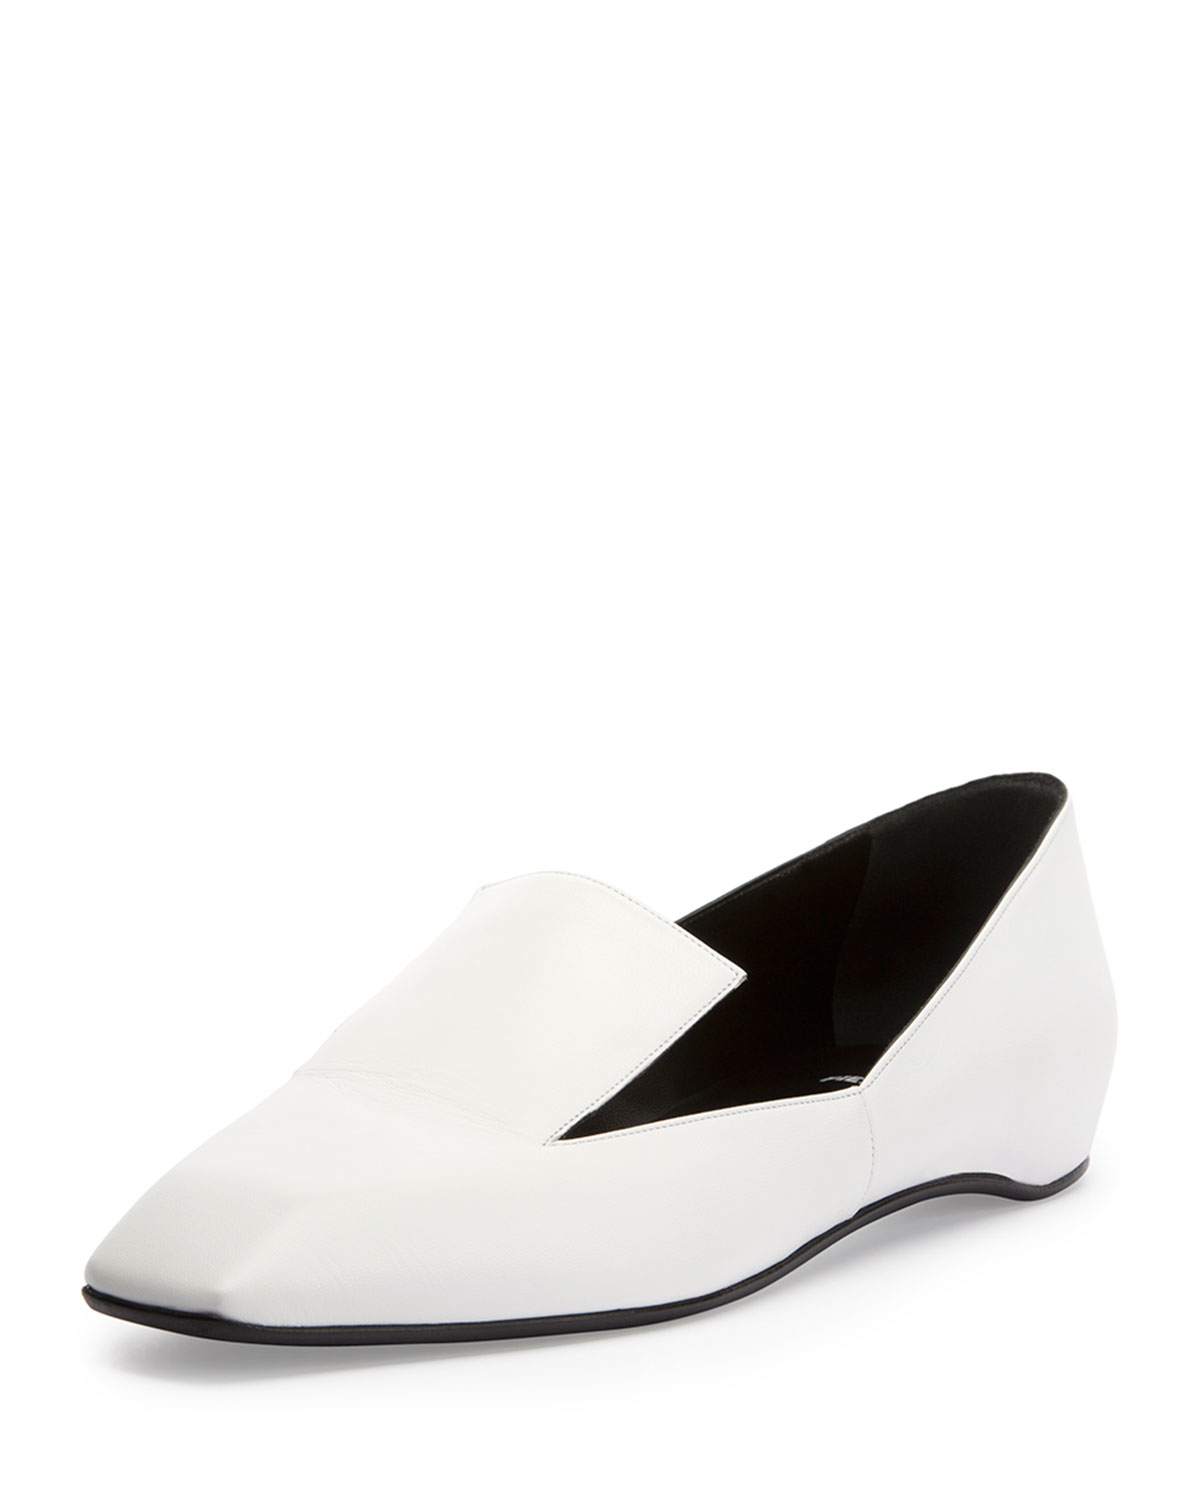 Pierre Hardy Pointed-Toe Leather Flats from china cheap price IZl26ETetY